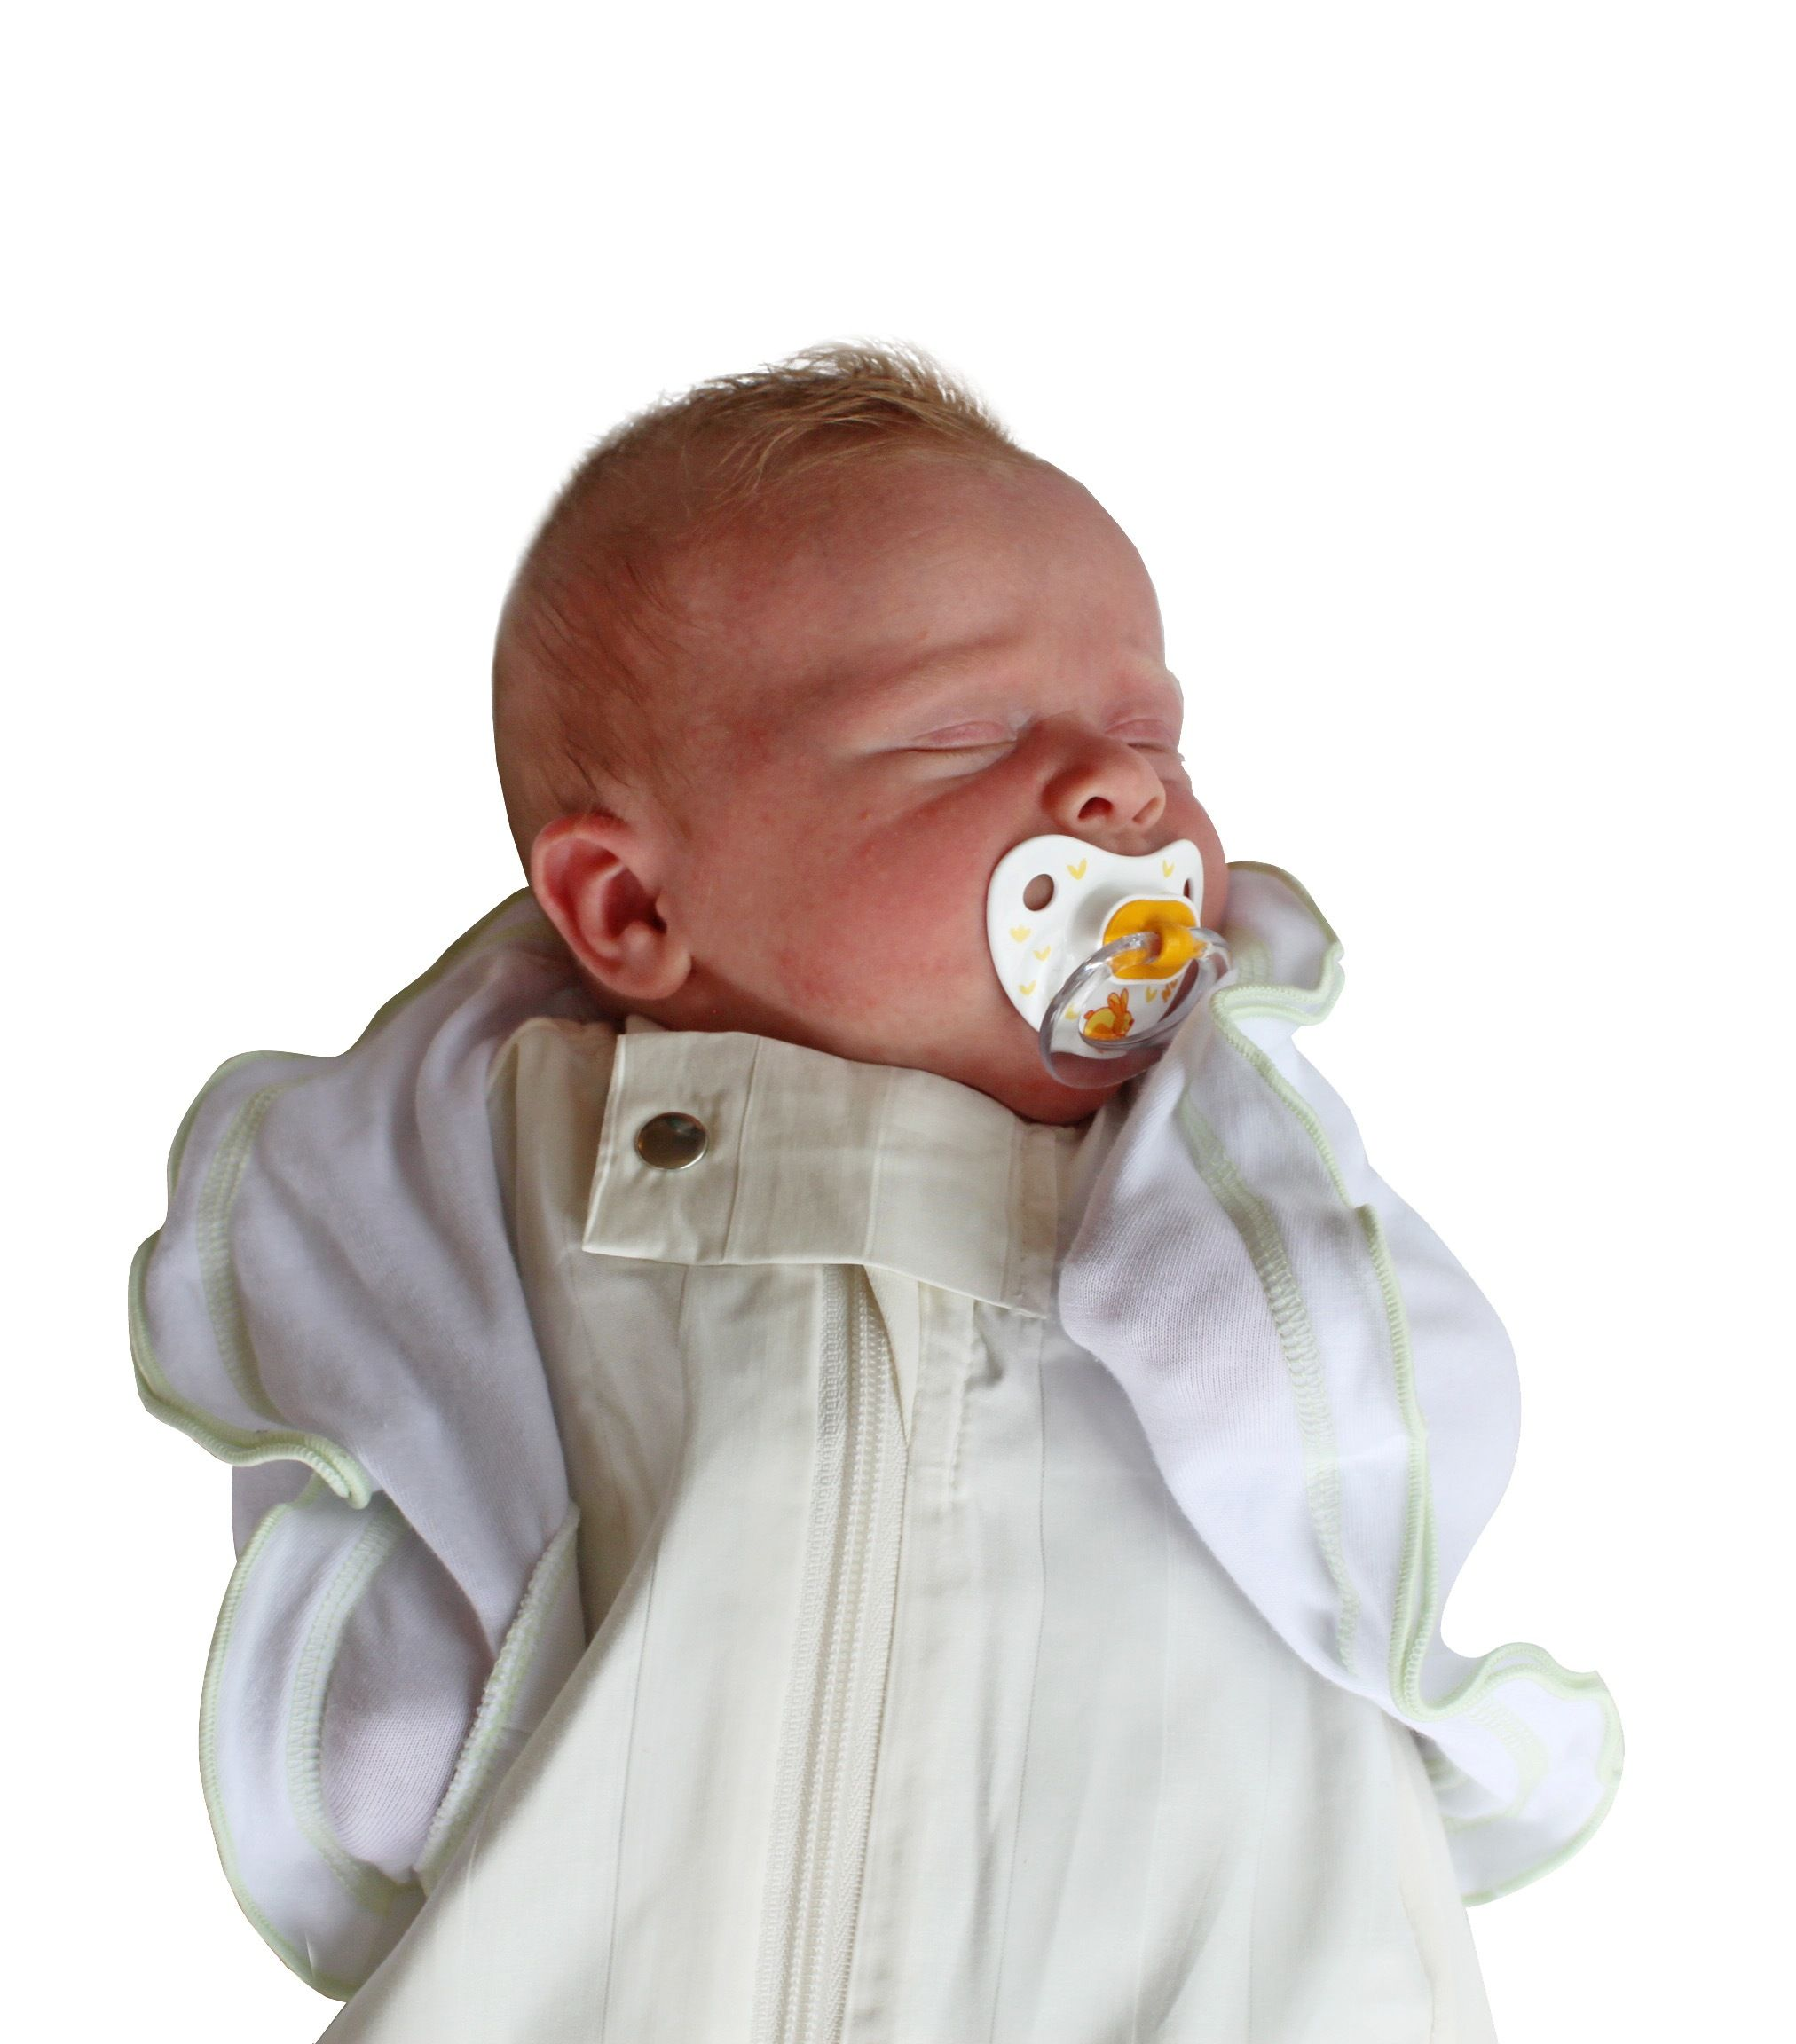 Summer Swaddling Info How To Wrap In Hot Weather Swaddling